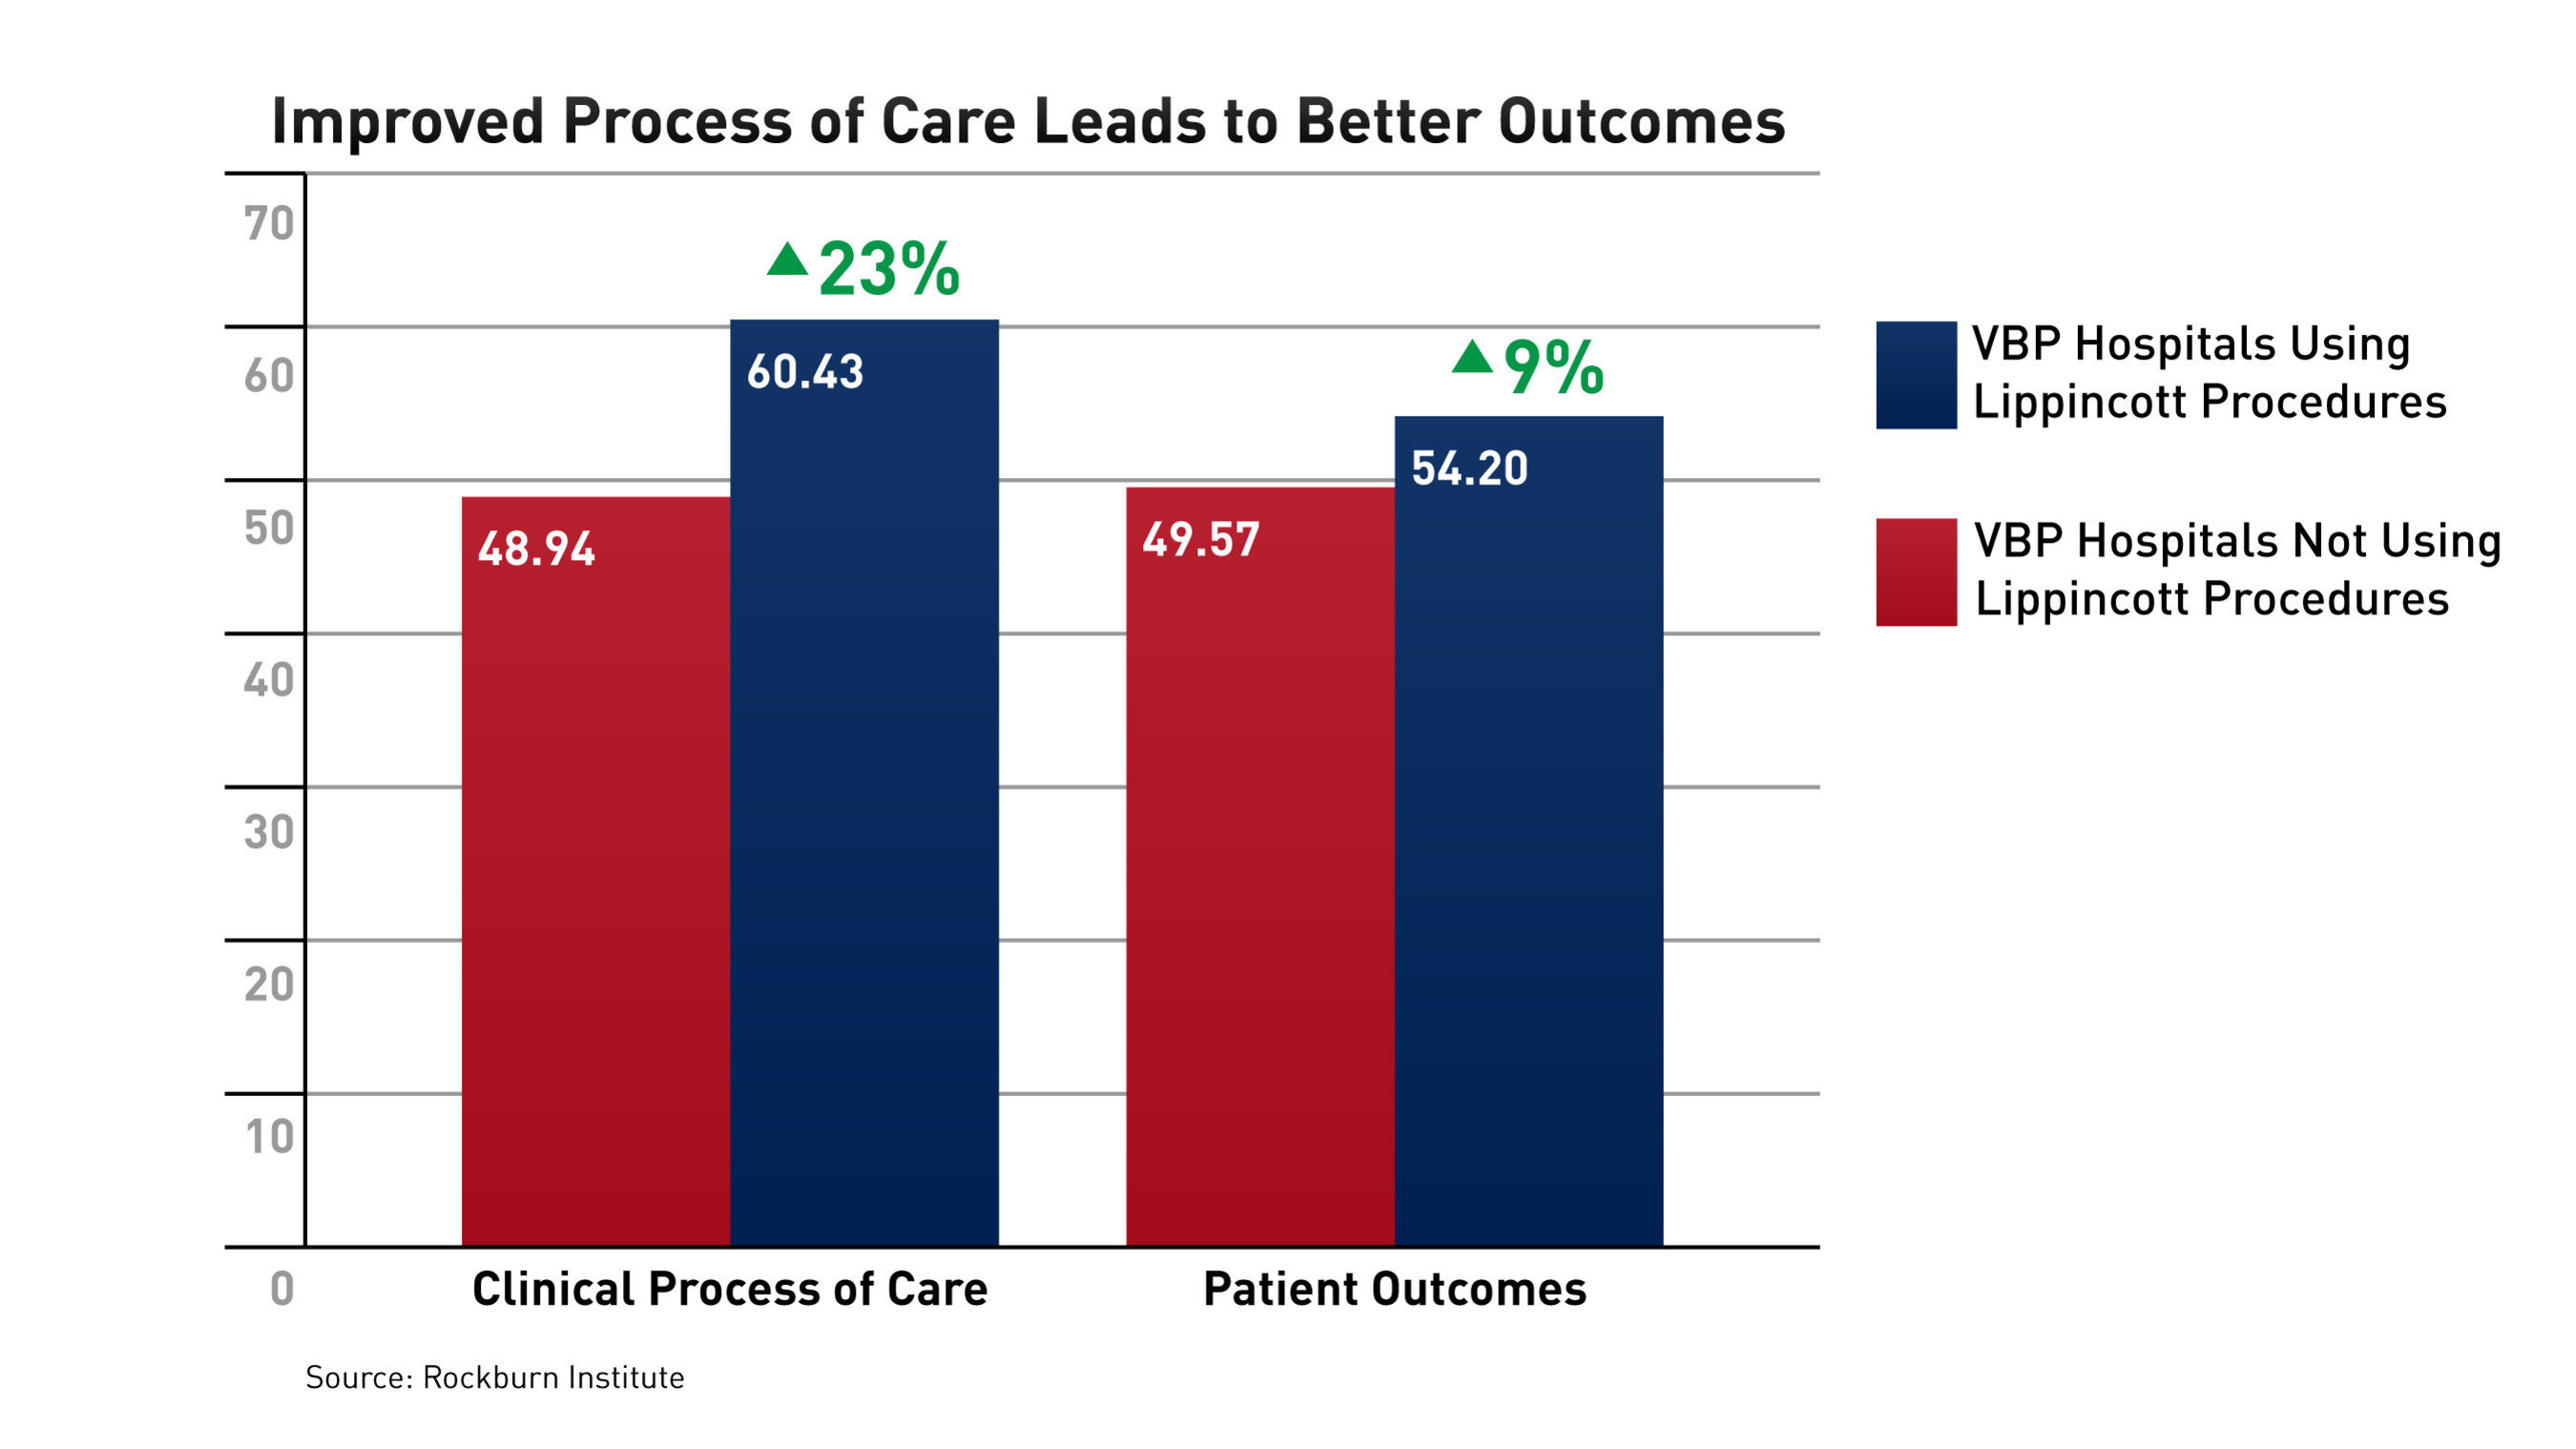 A new Rockburn Institute study finds that hospitals using Lippincott Procedures are correlated with higher overall CMS Value-based Purchasing (VBP) domain ranks. According to the study, hospitals in the VBP program that use Lippincott Procedures performed 23 percent better in the median Clinical Process of Care Score and 9 percent better in Patient Outcomes.